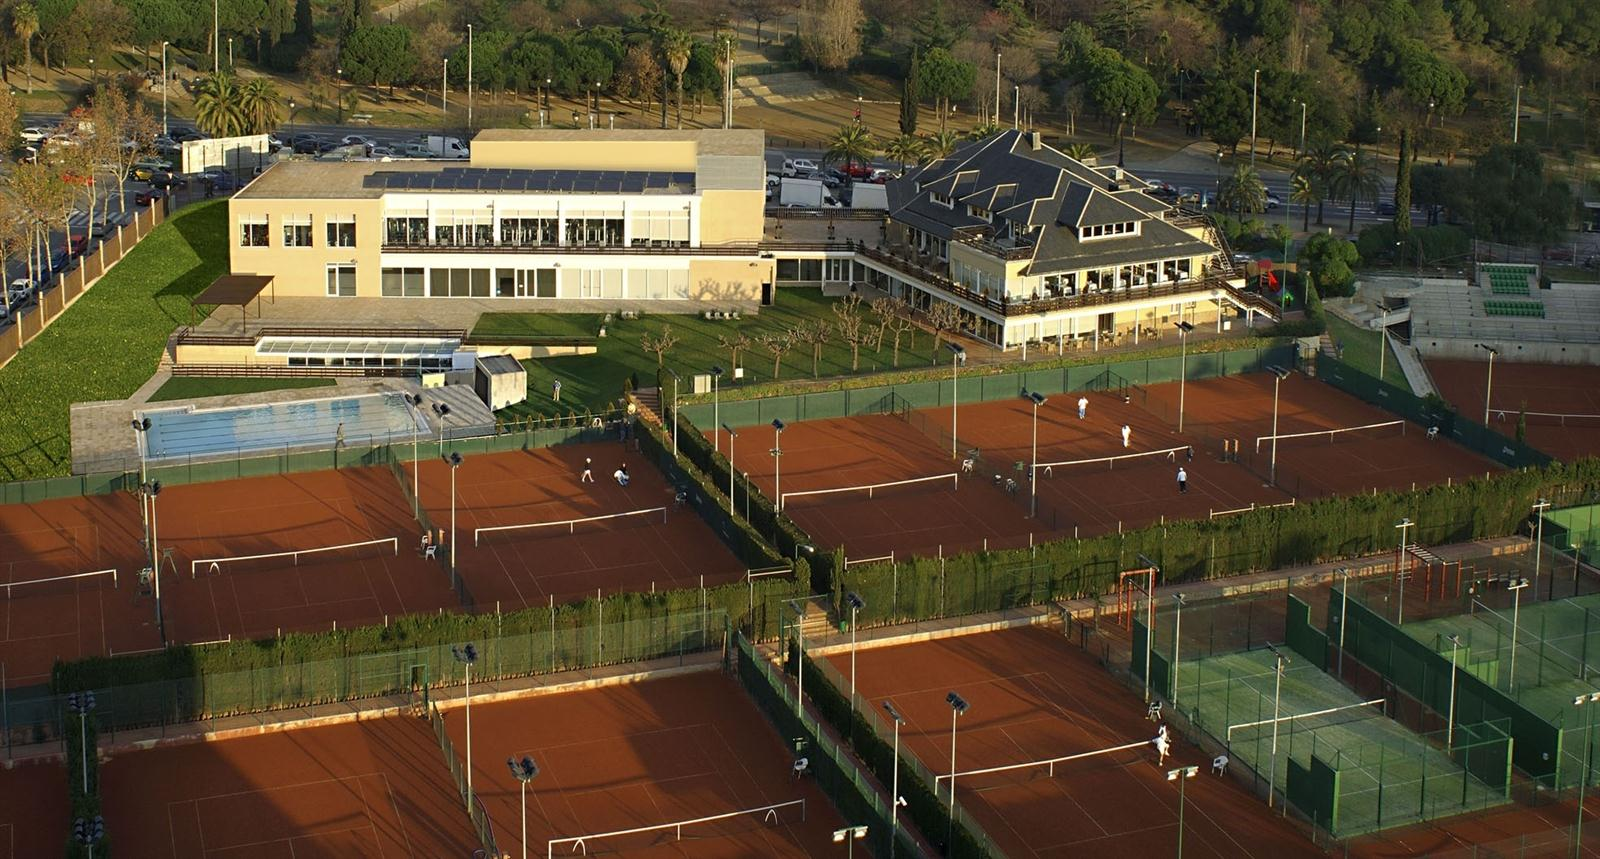 Club Internacional de Tenis Madrid